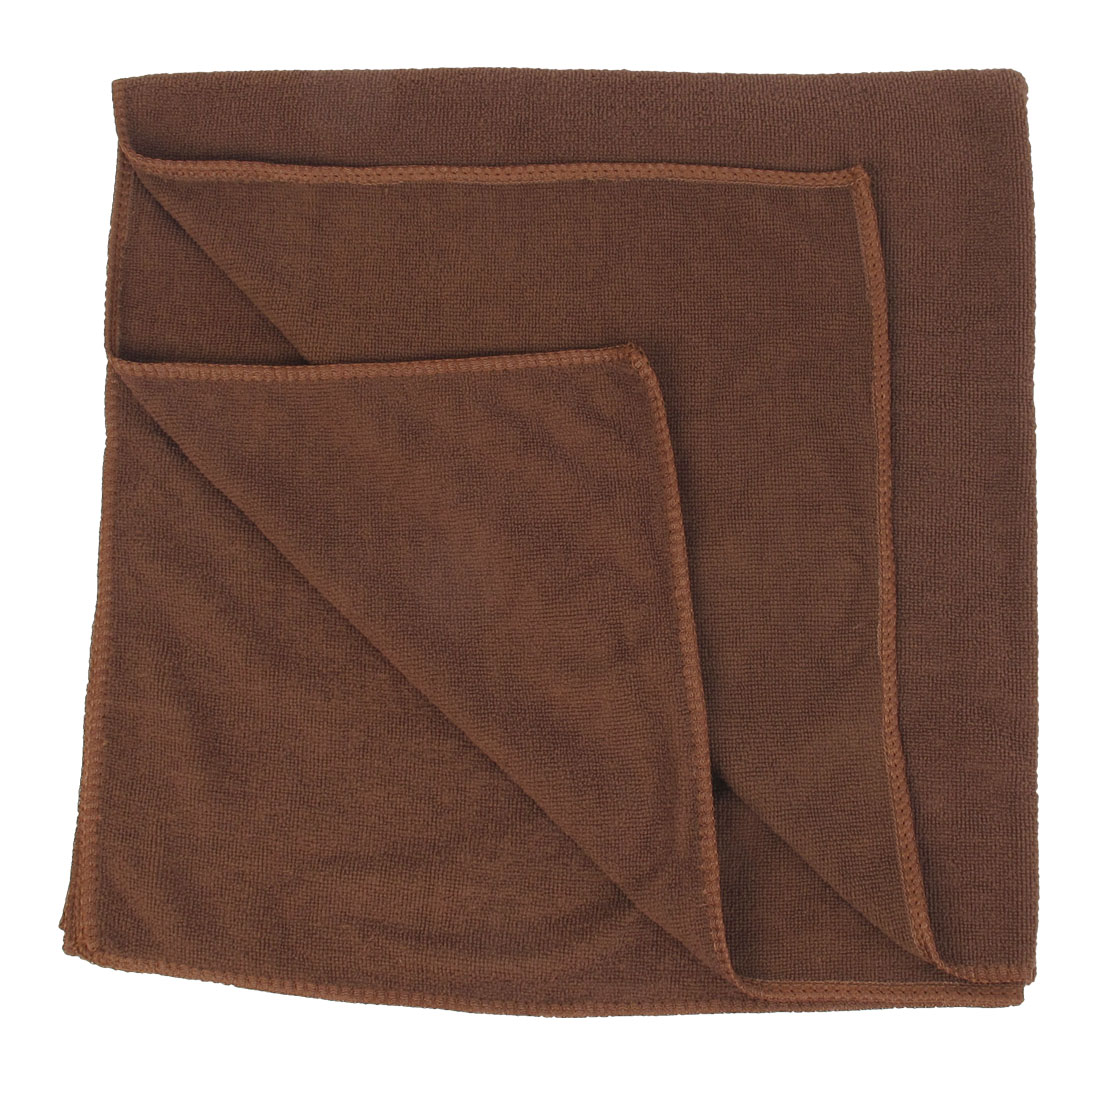 140cm x 70cm Coffee Color Soft Terry Rectangle Bath Shower Towel for Gym Home Hotel Swim